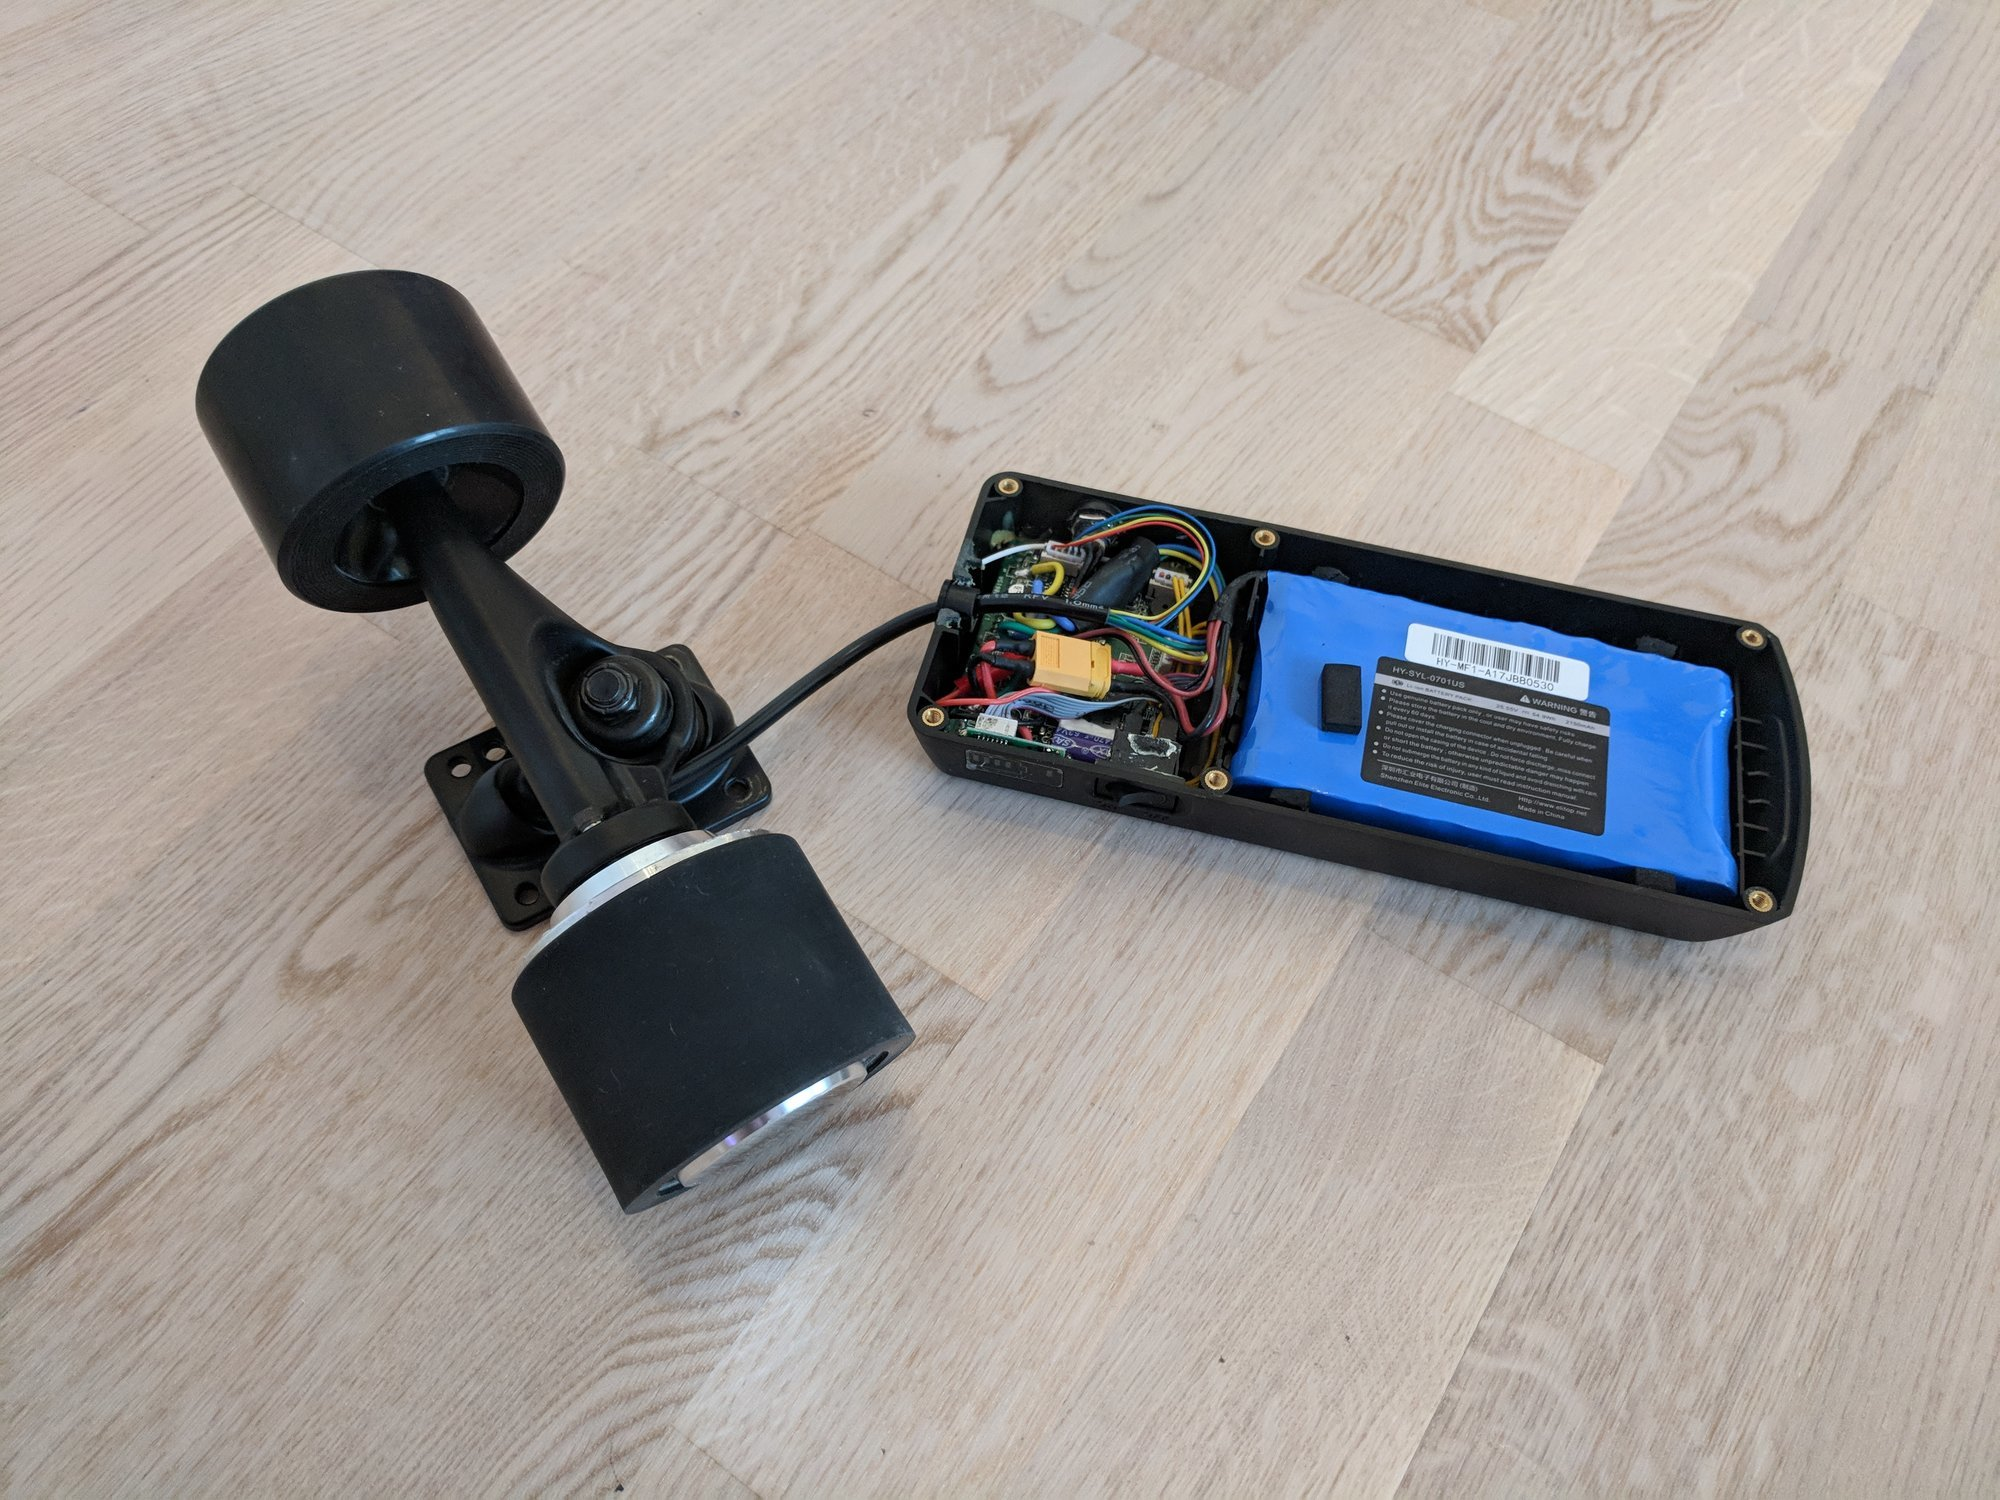 The drive train of the electric skateboard connected to the complete electronics with battery pack in the enclosing